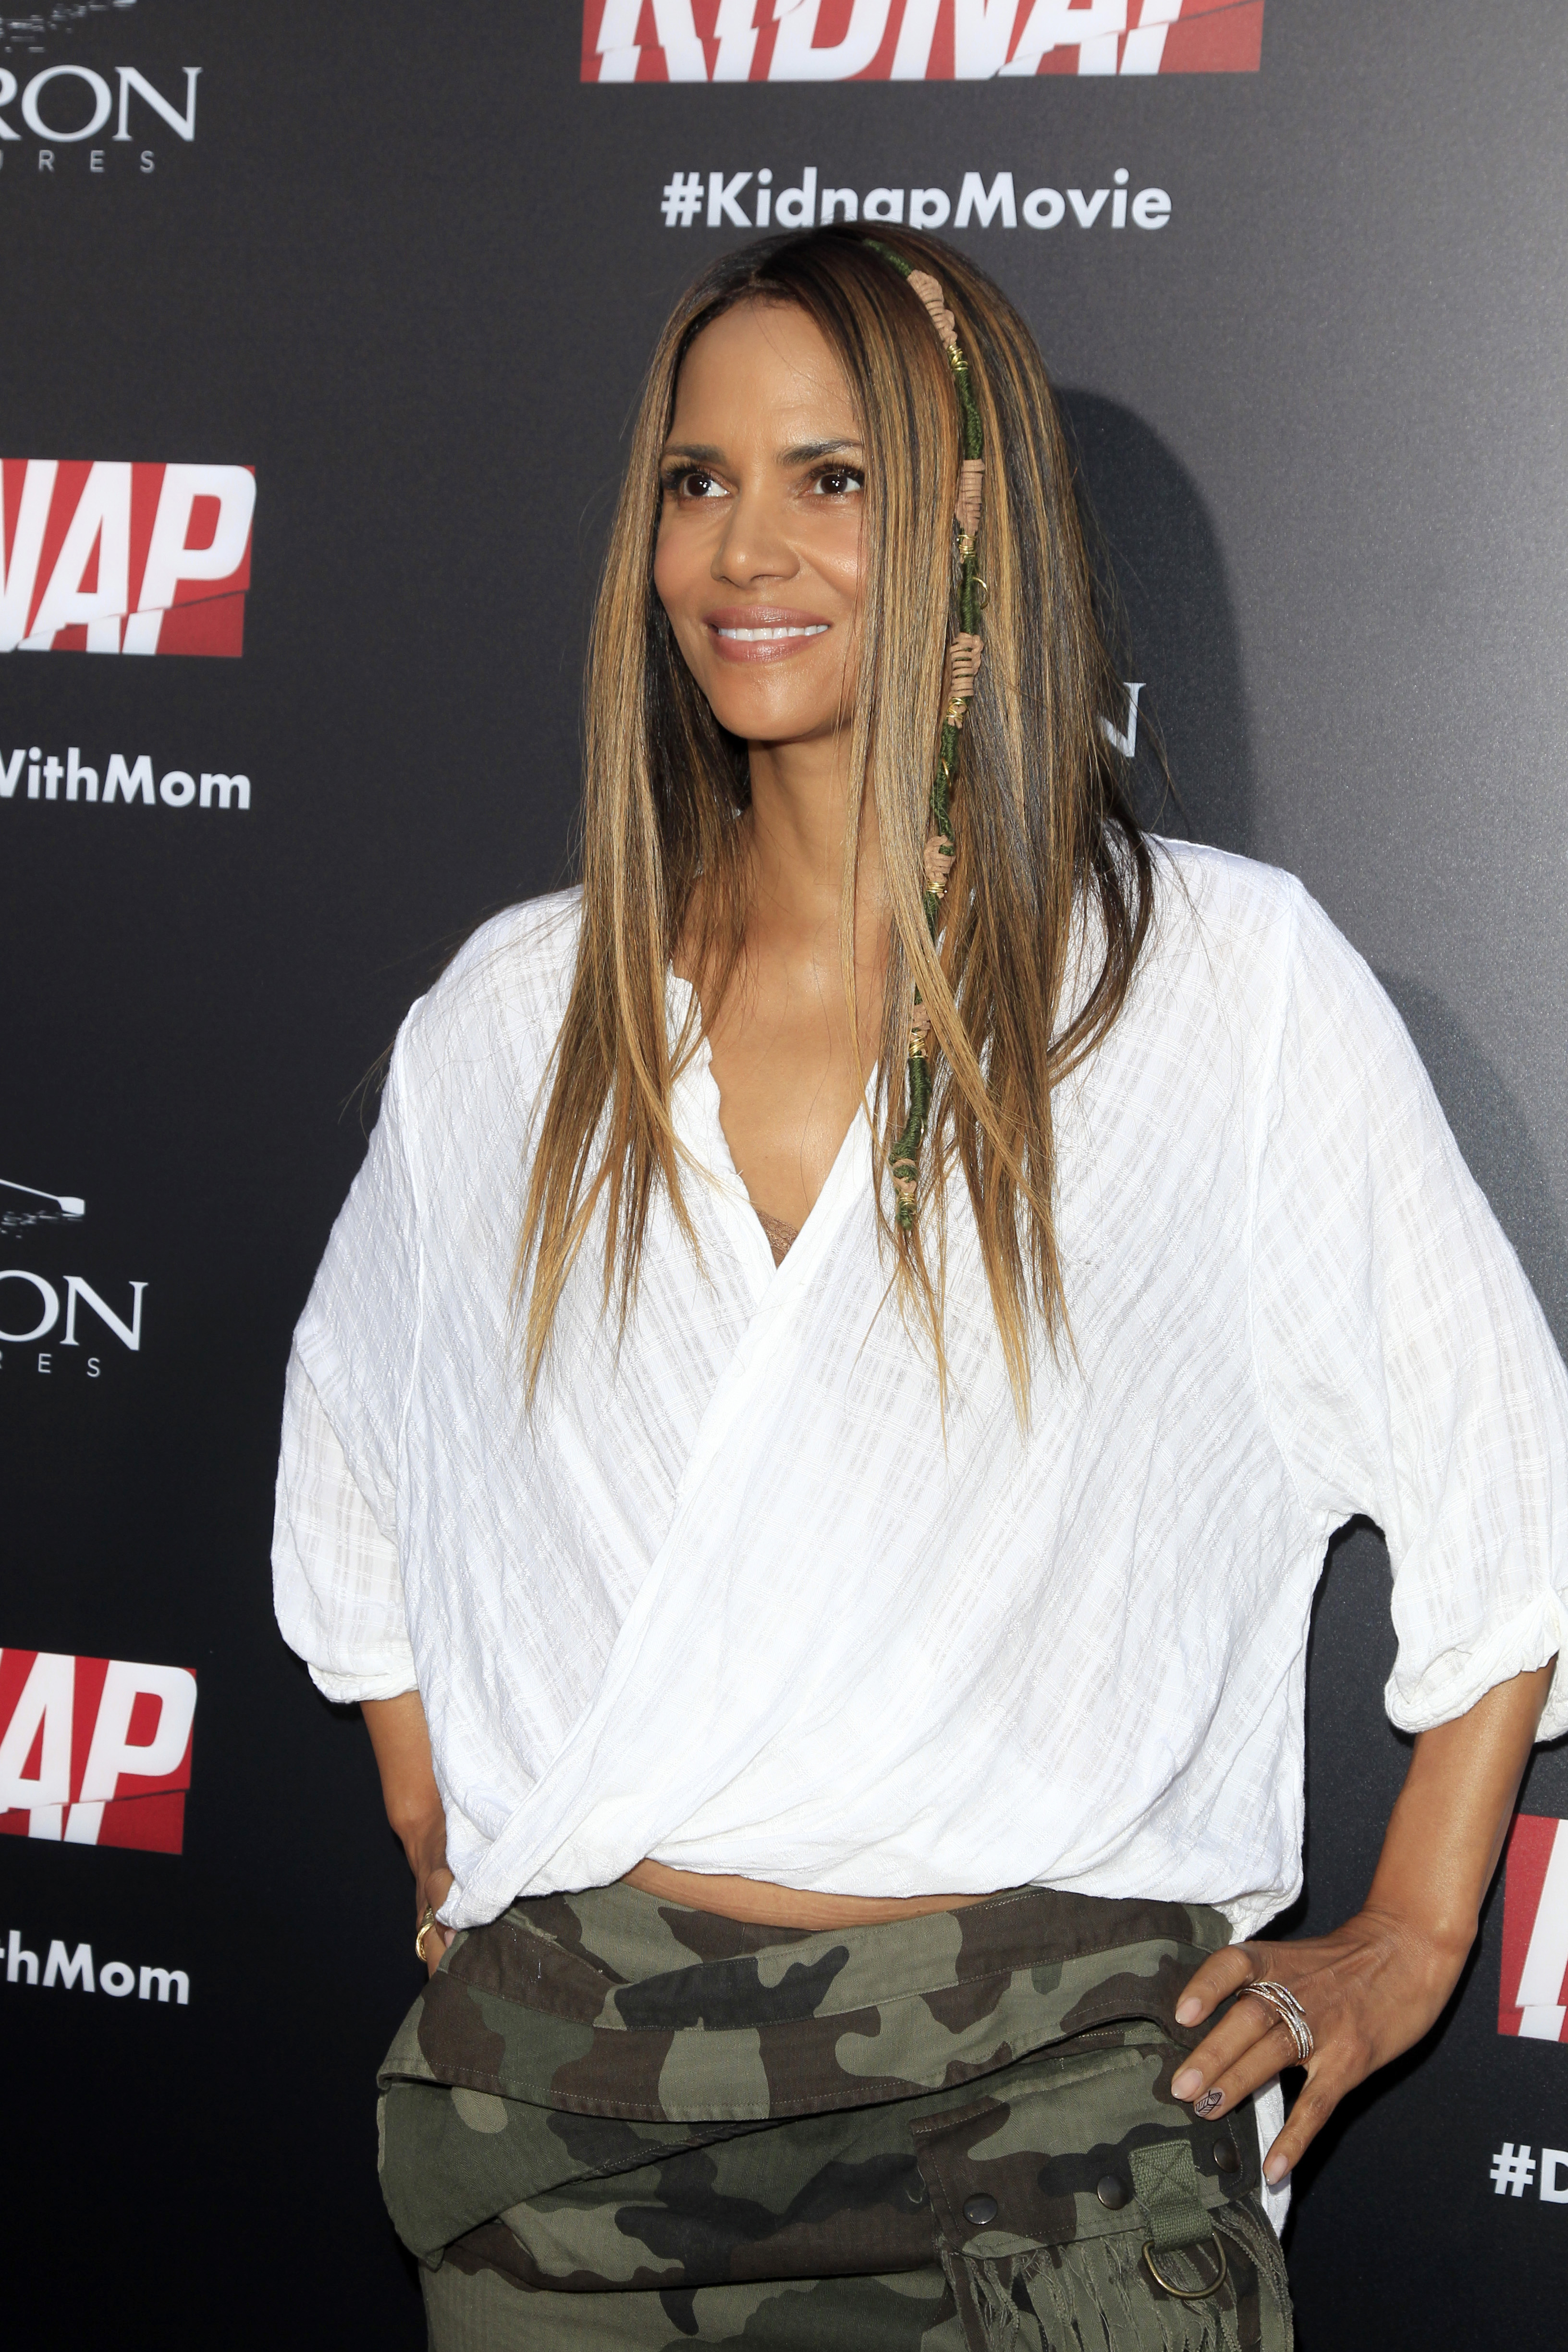 """Kidnap"" Premiere at the ArcLight Theater on July 31, 2017 in Los Angeles, CA  Featuring: Halle Berry Where: Los Angeles, California, United States When: 01 Aug 2017 Credit: Nicky Nelson/WENN.com"